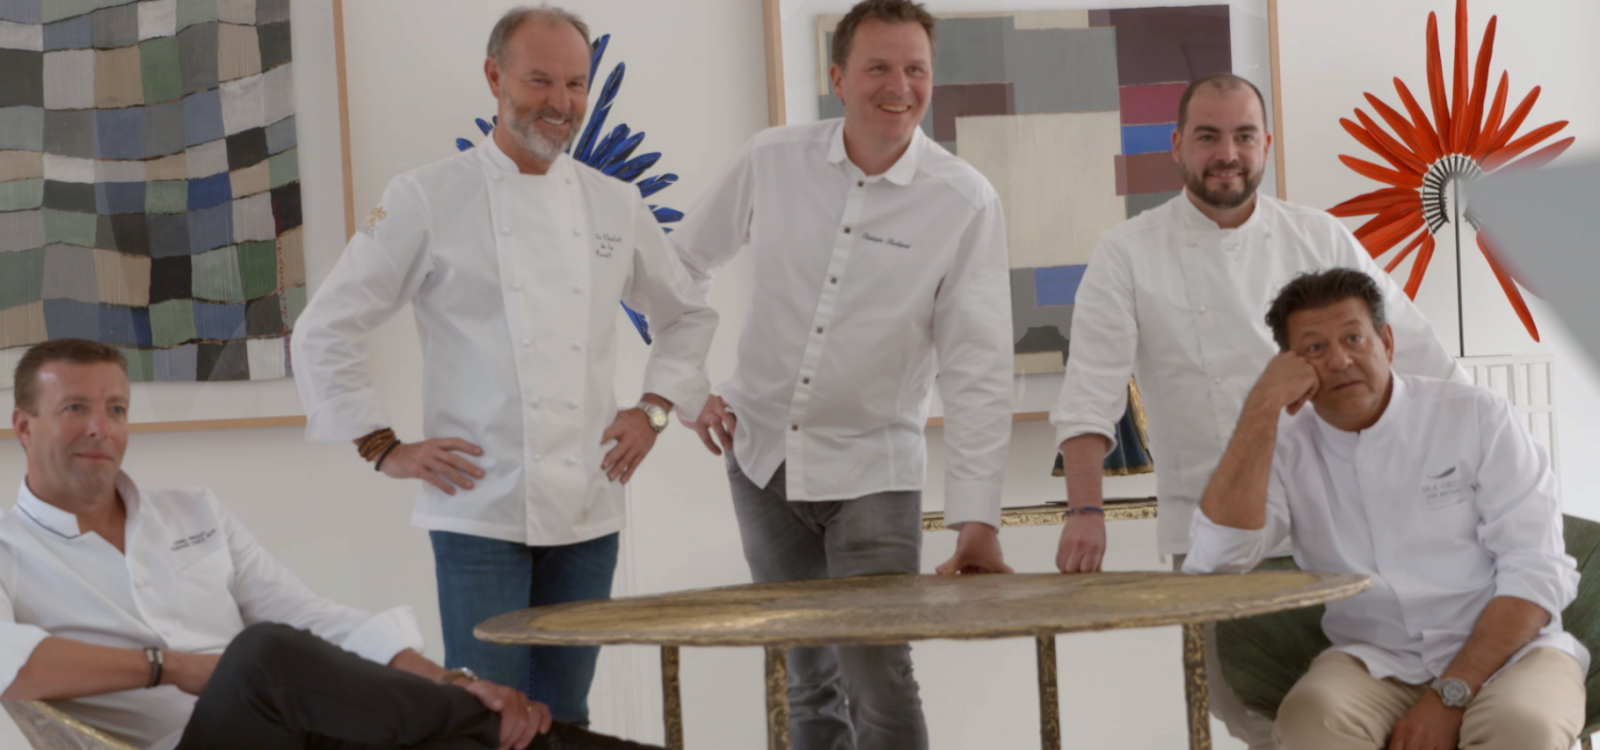 5_chefs_2.png